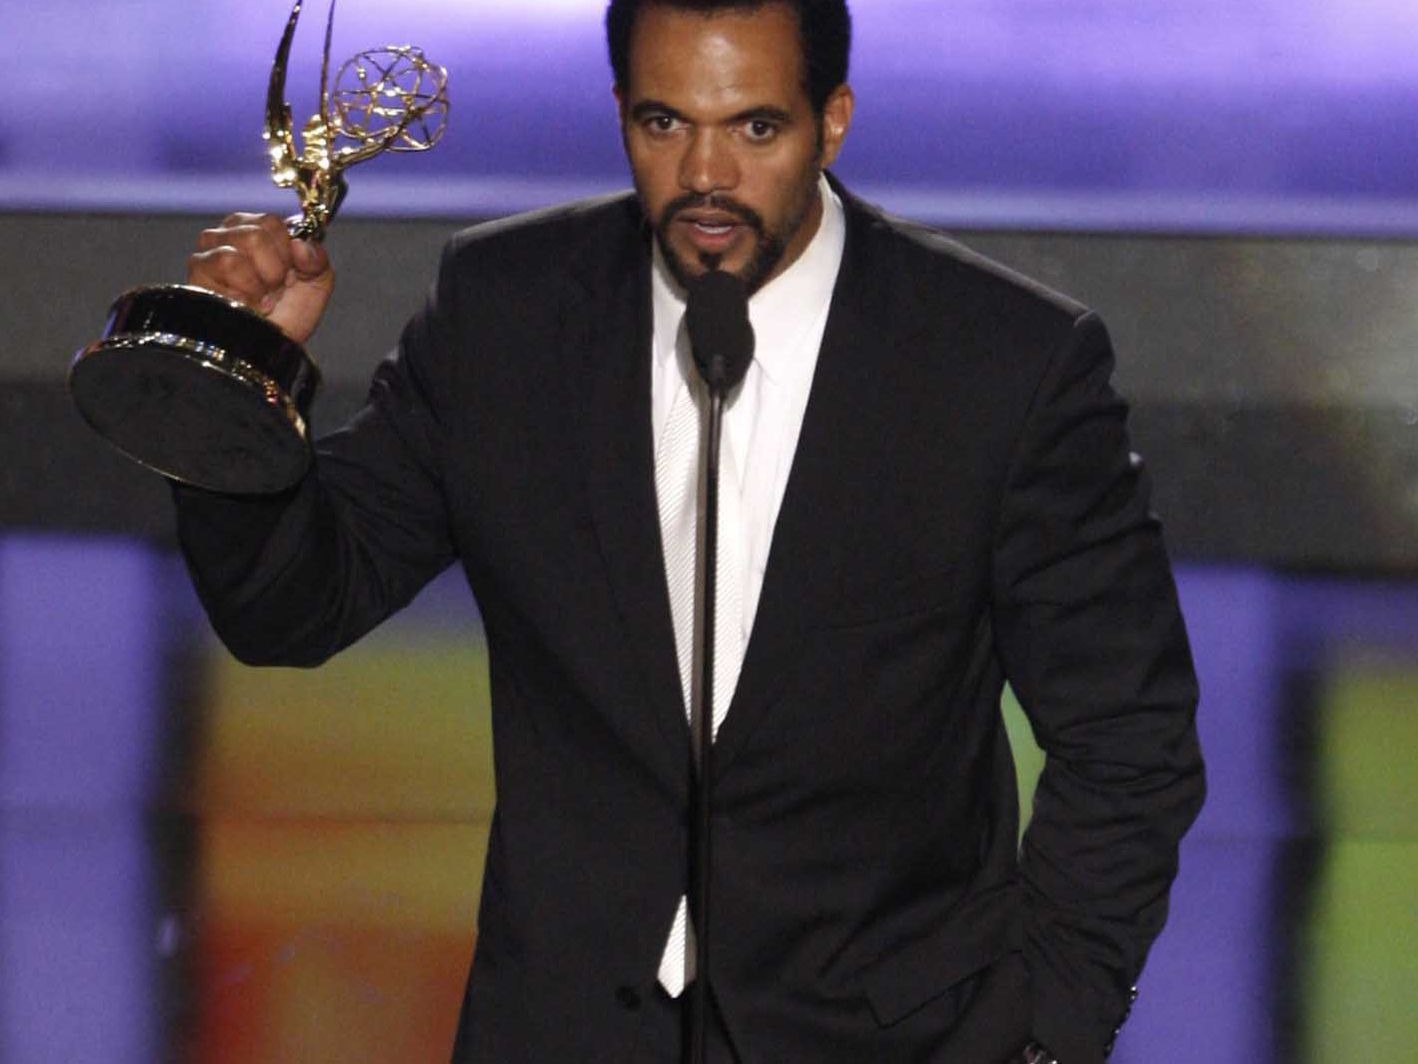 Actor Kristoff St. John died of heart disease; alcohol a contributing factor, coroner says